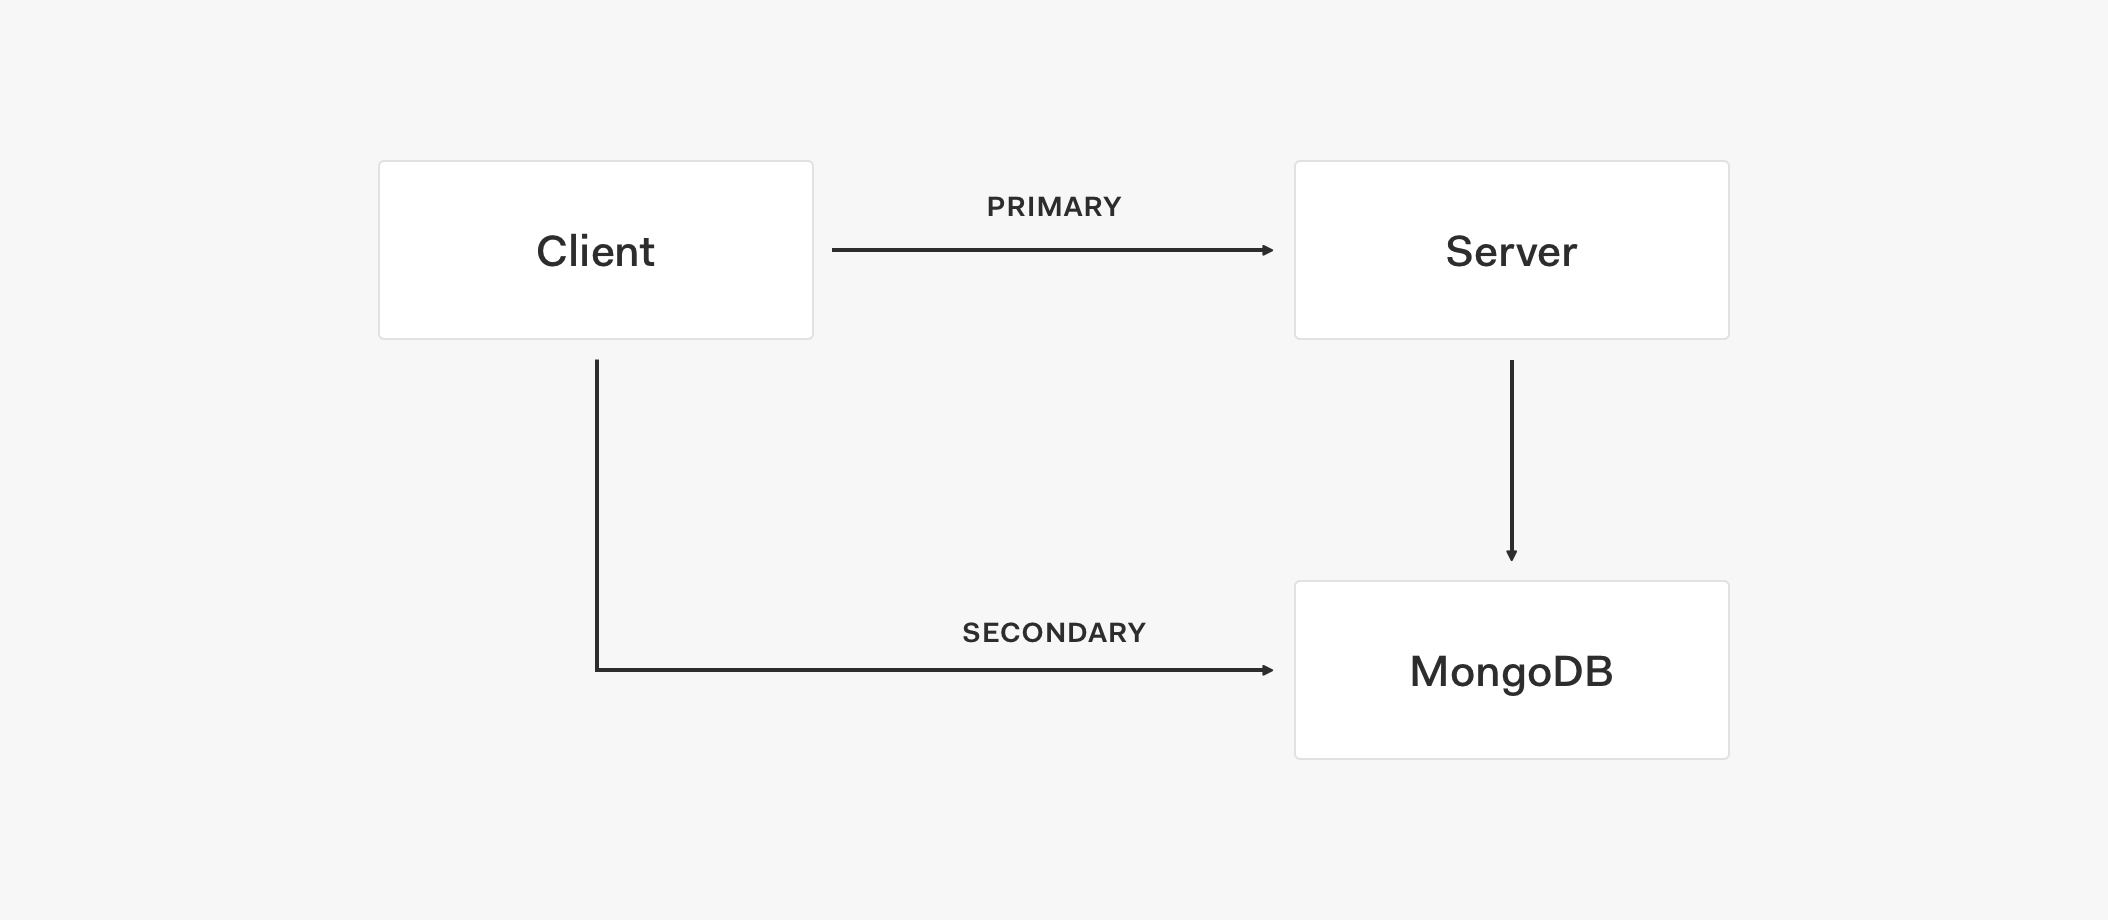 Service architecture implementing a primary and secondary store